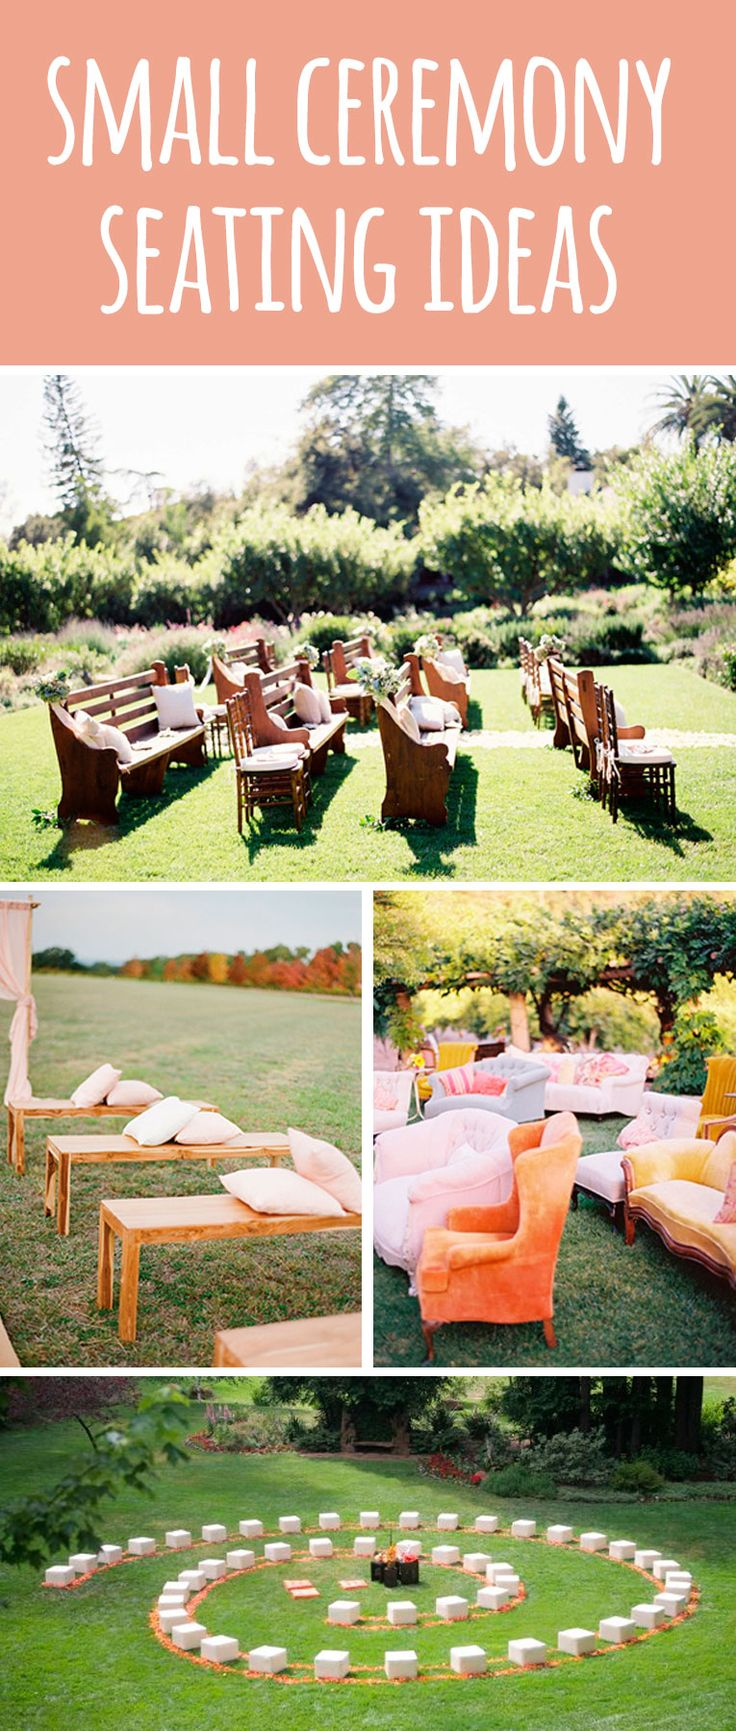 Small wedding ceremony seating ideas. #smallwedding